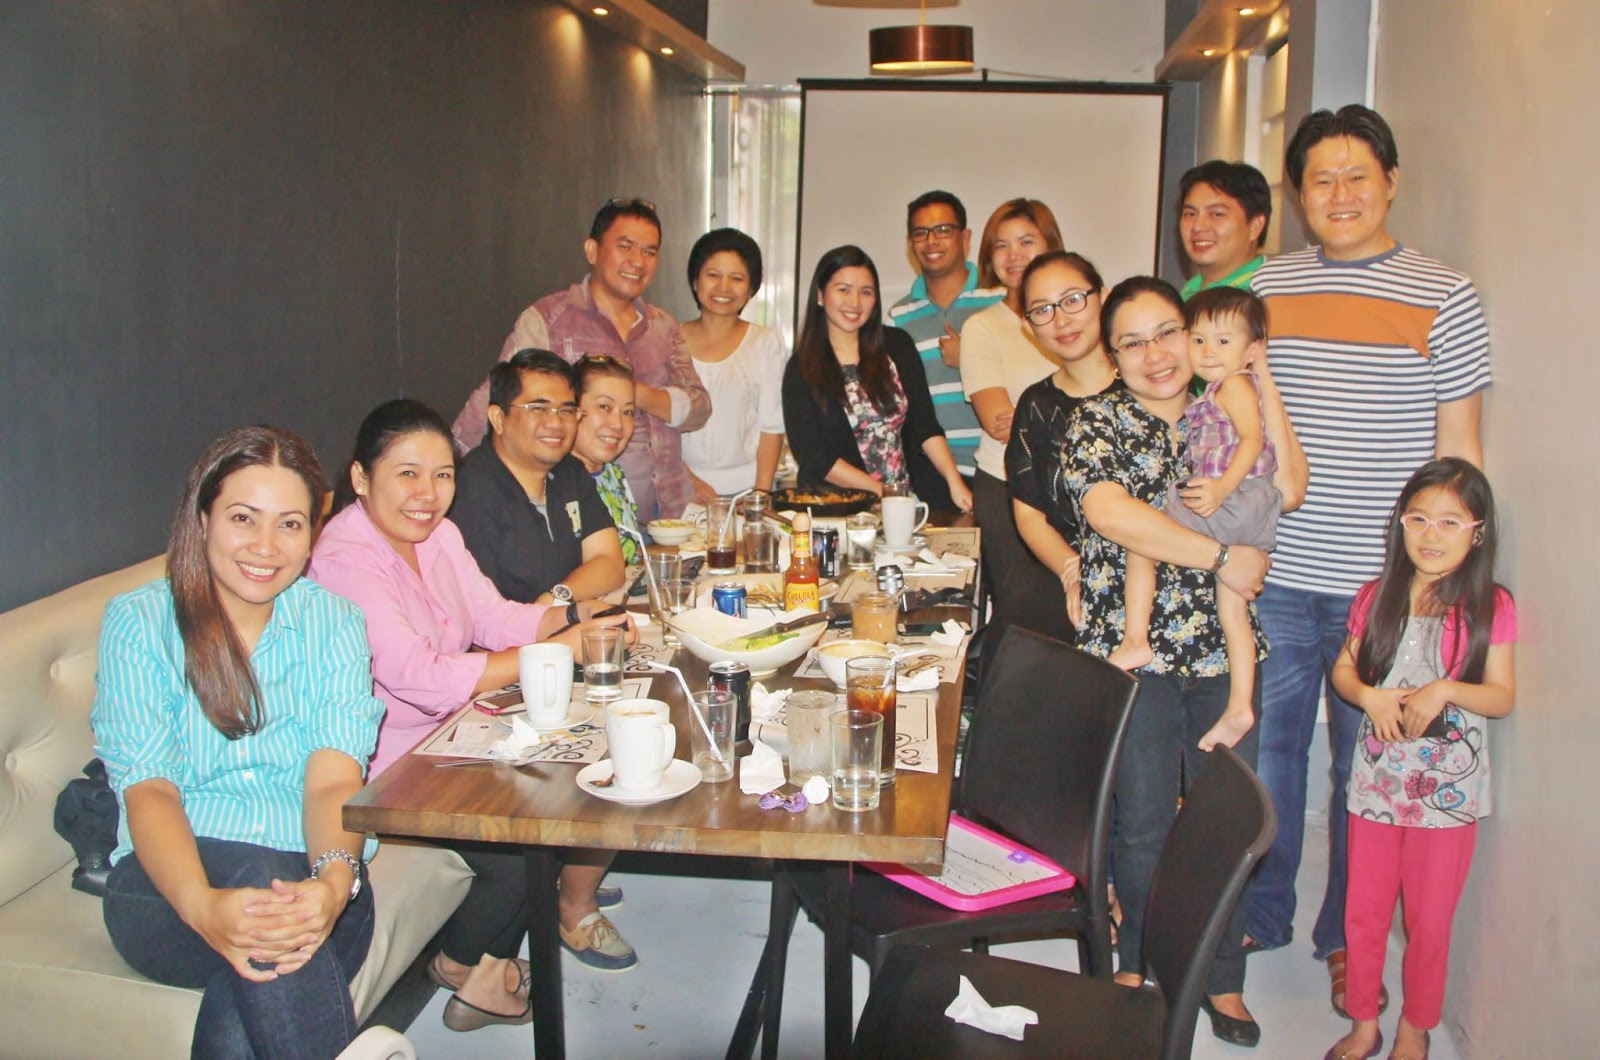 Meganox - health benefits of Meganox - Bacolod bloggers